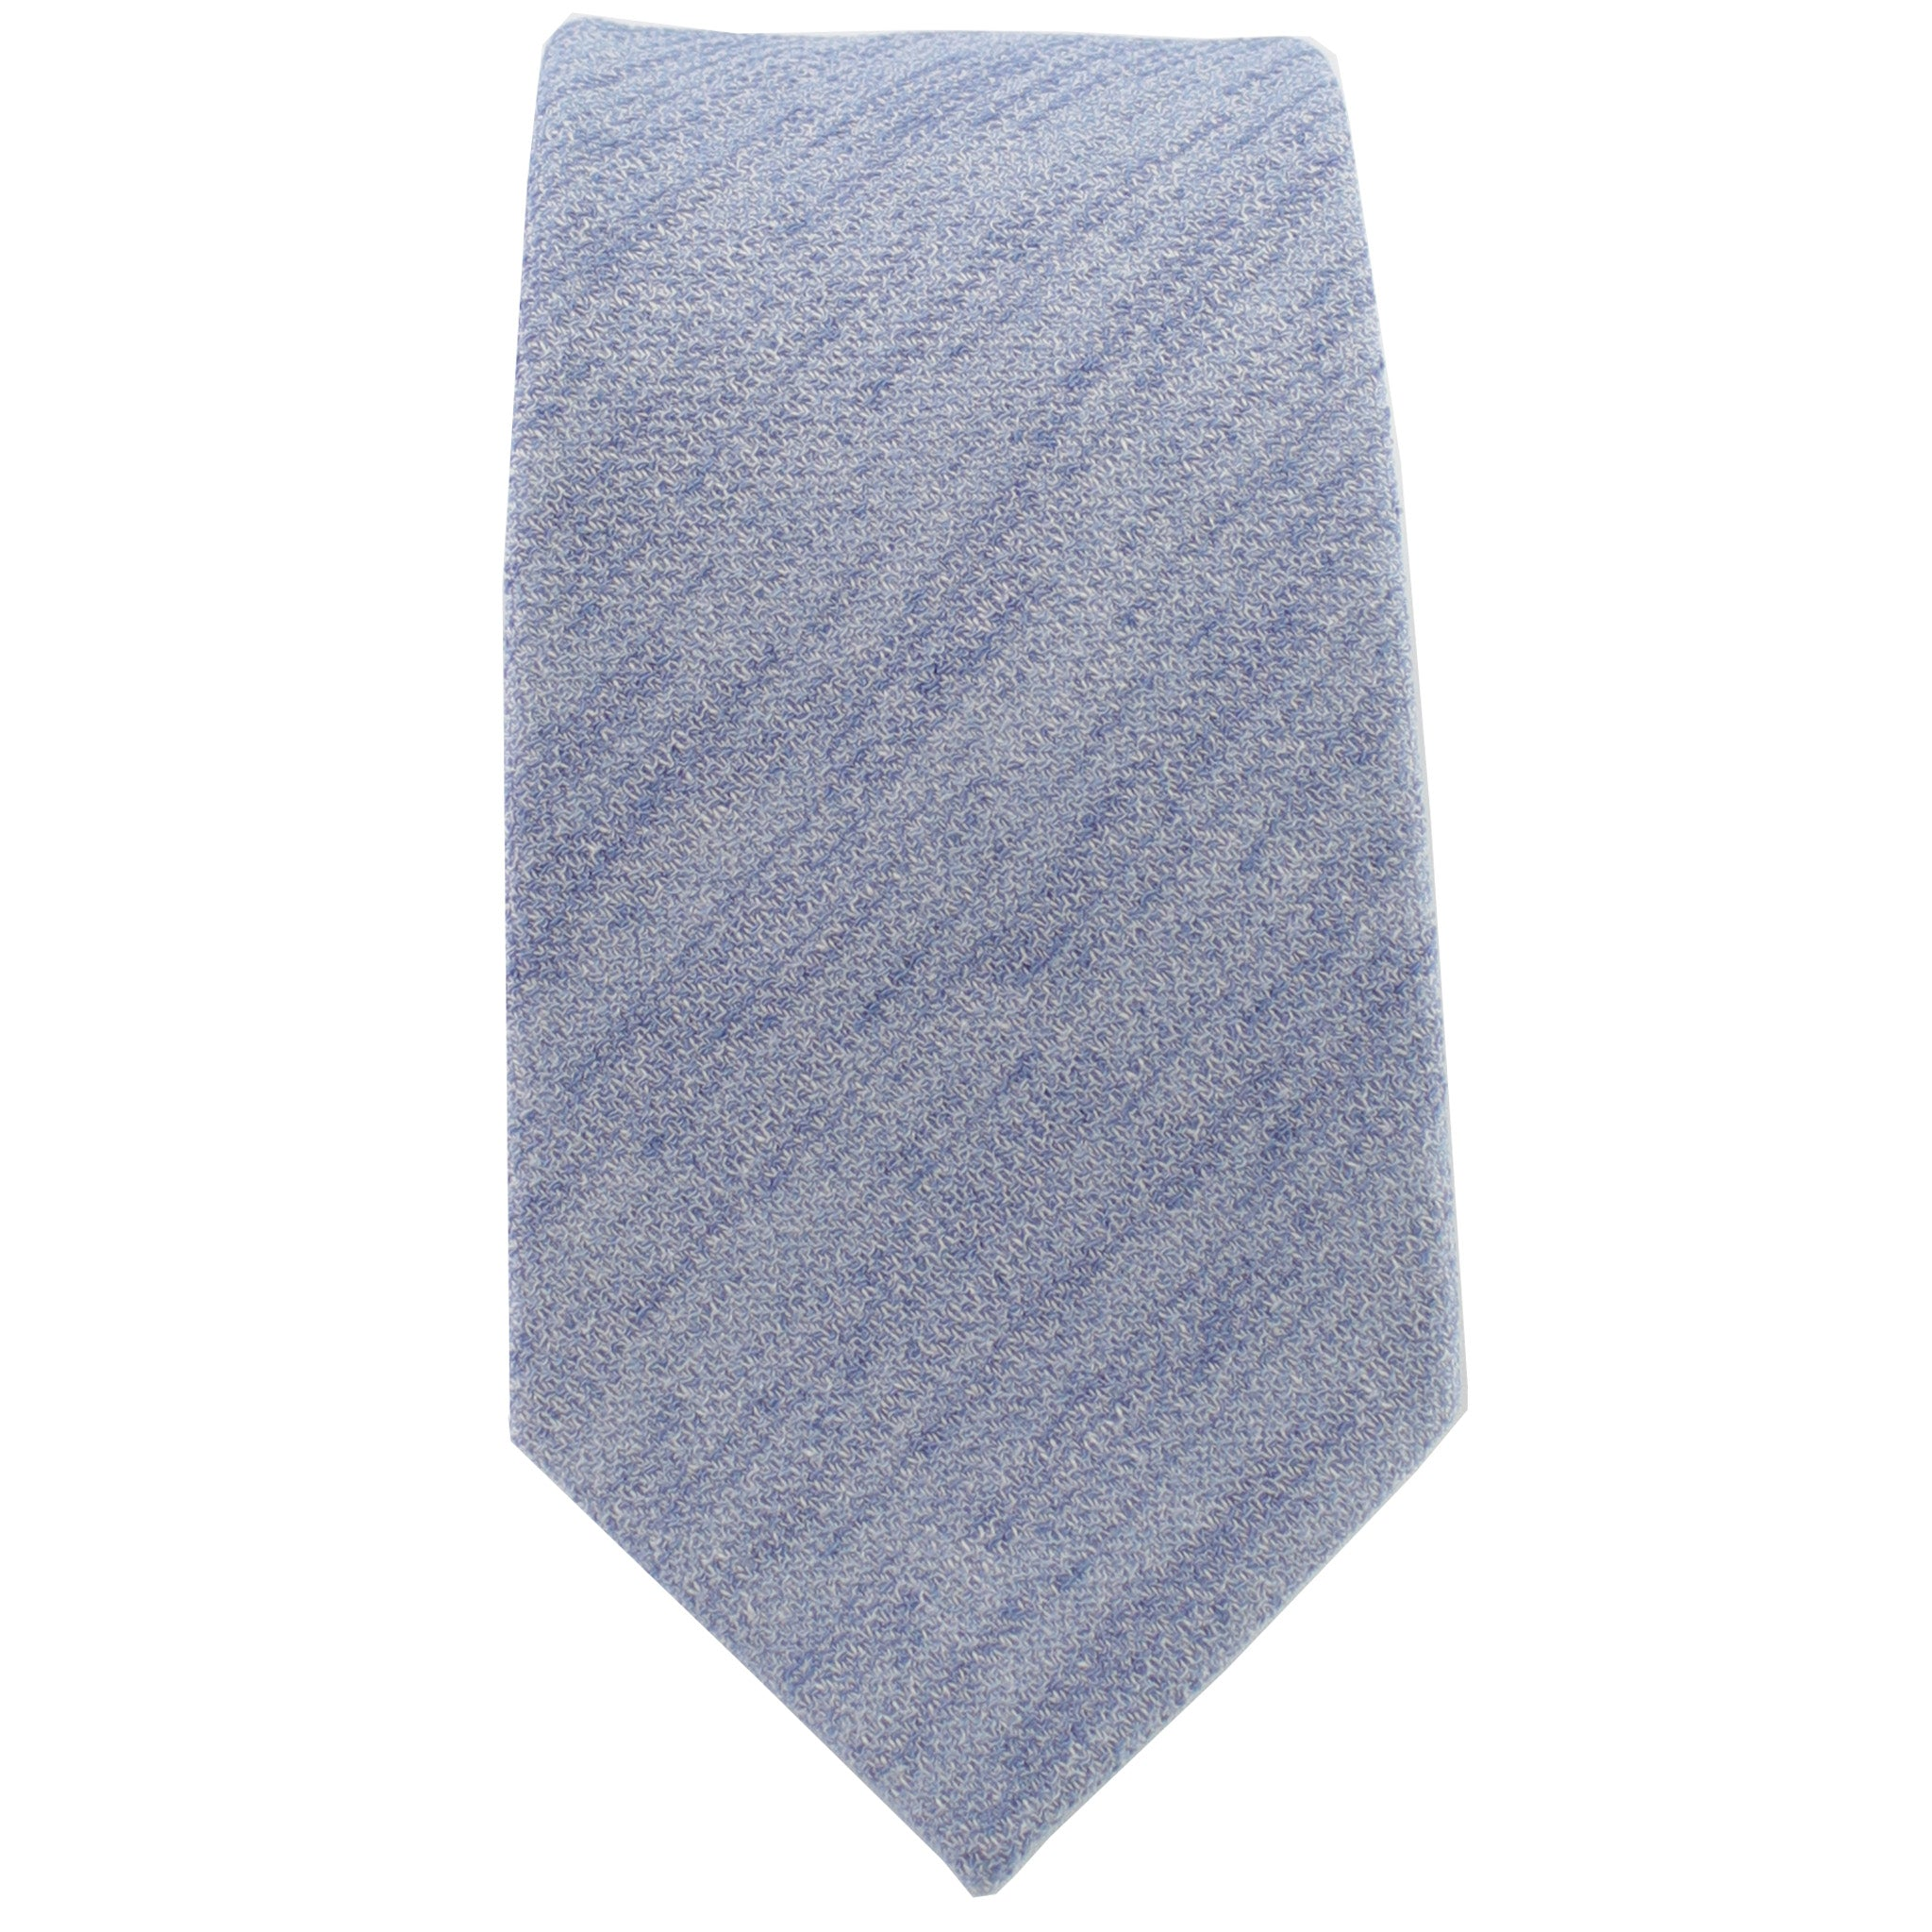 Blue Cloud Tie from DIBI